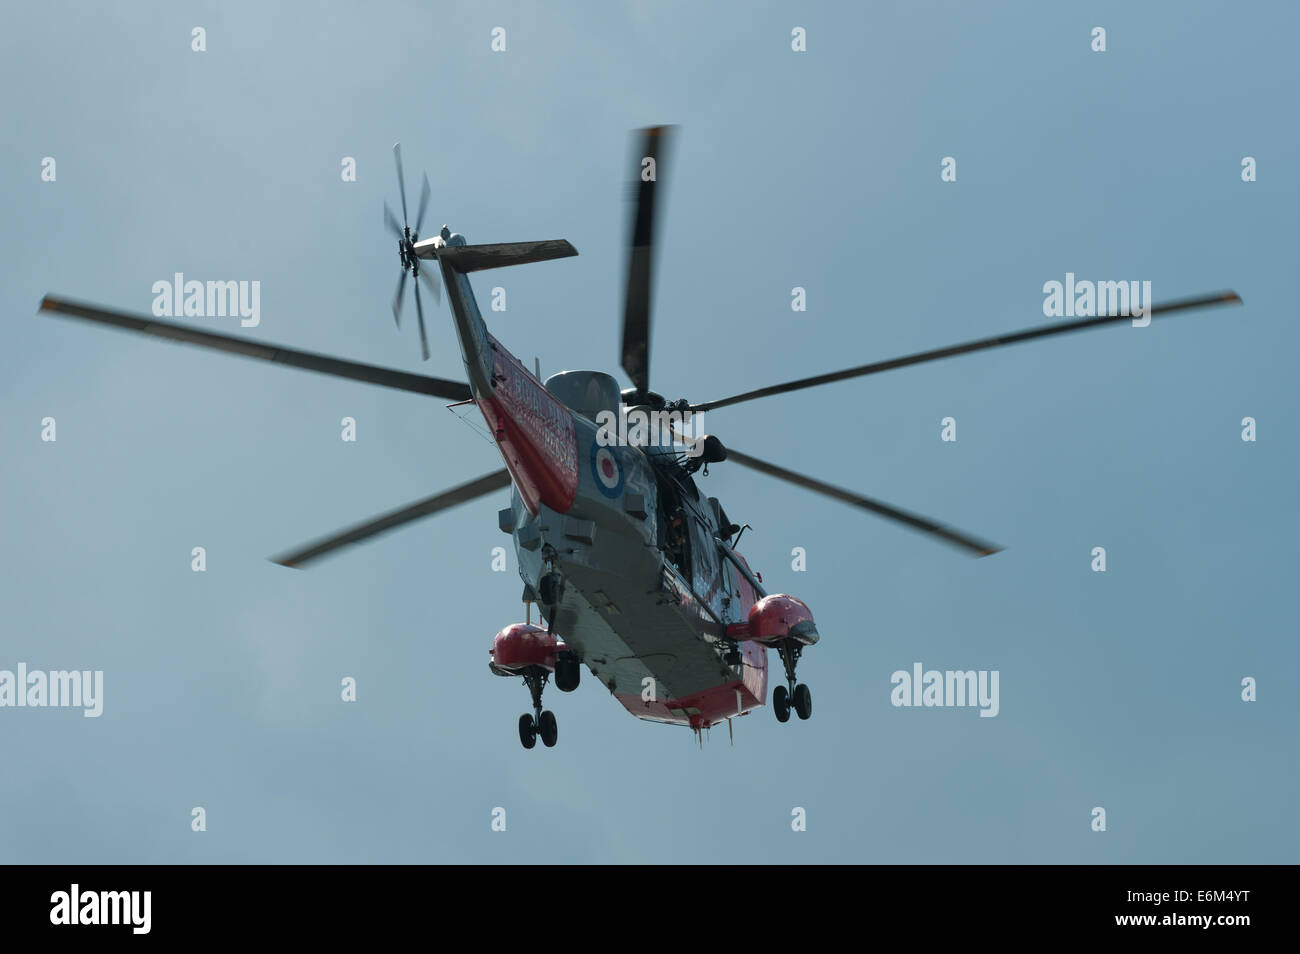 Royal Navy Rescue Westland Sea King helicopter, Dawlish Air Show Aug 23, 2014. - Stock Image